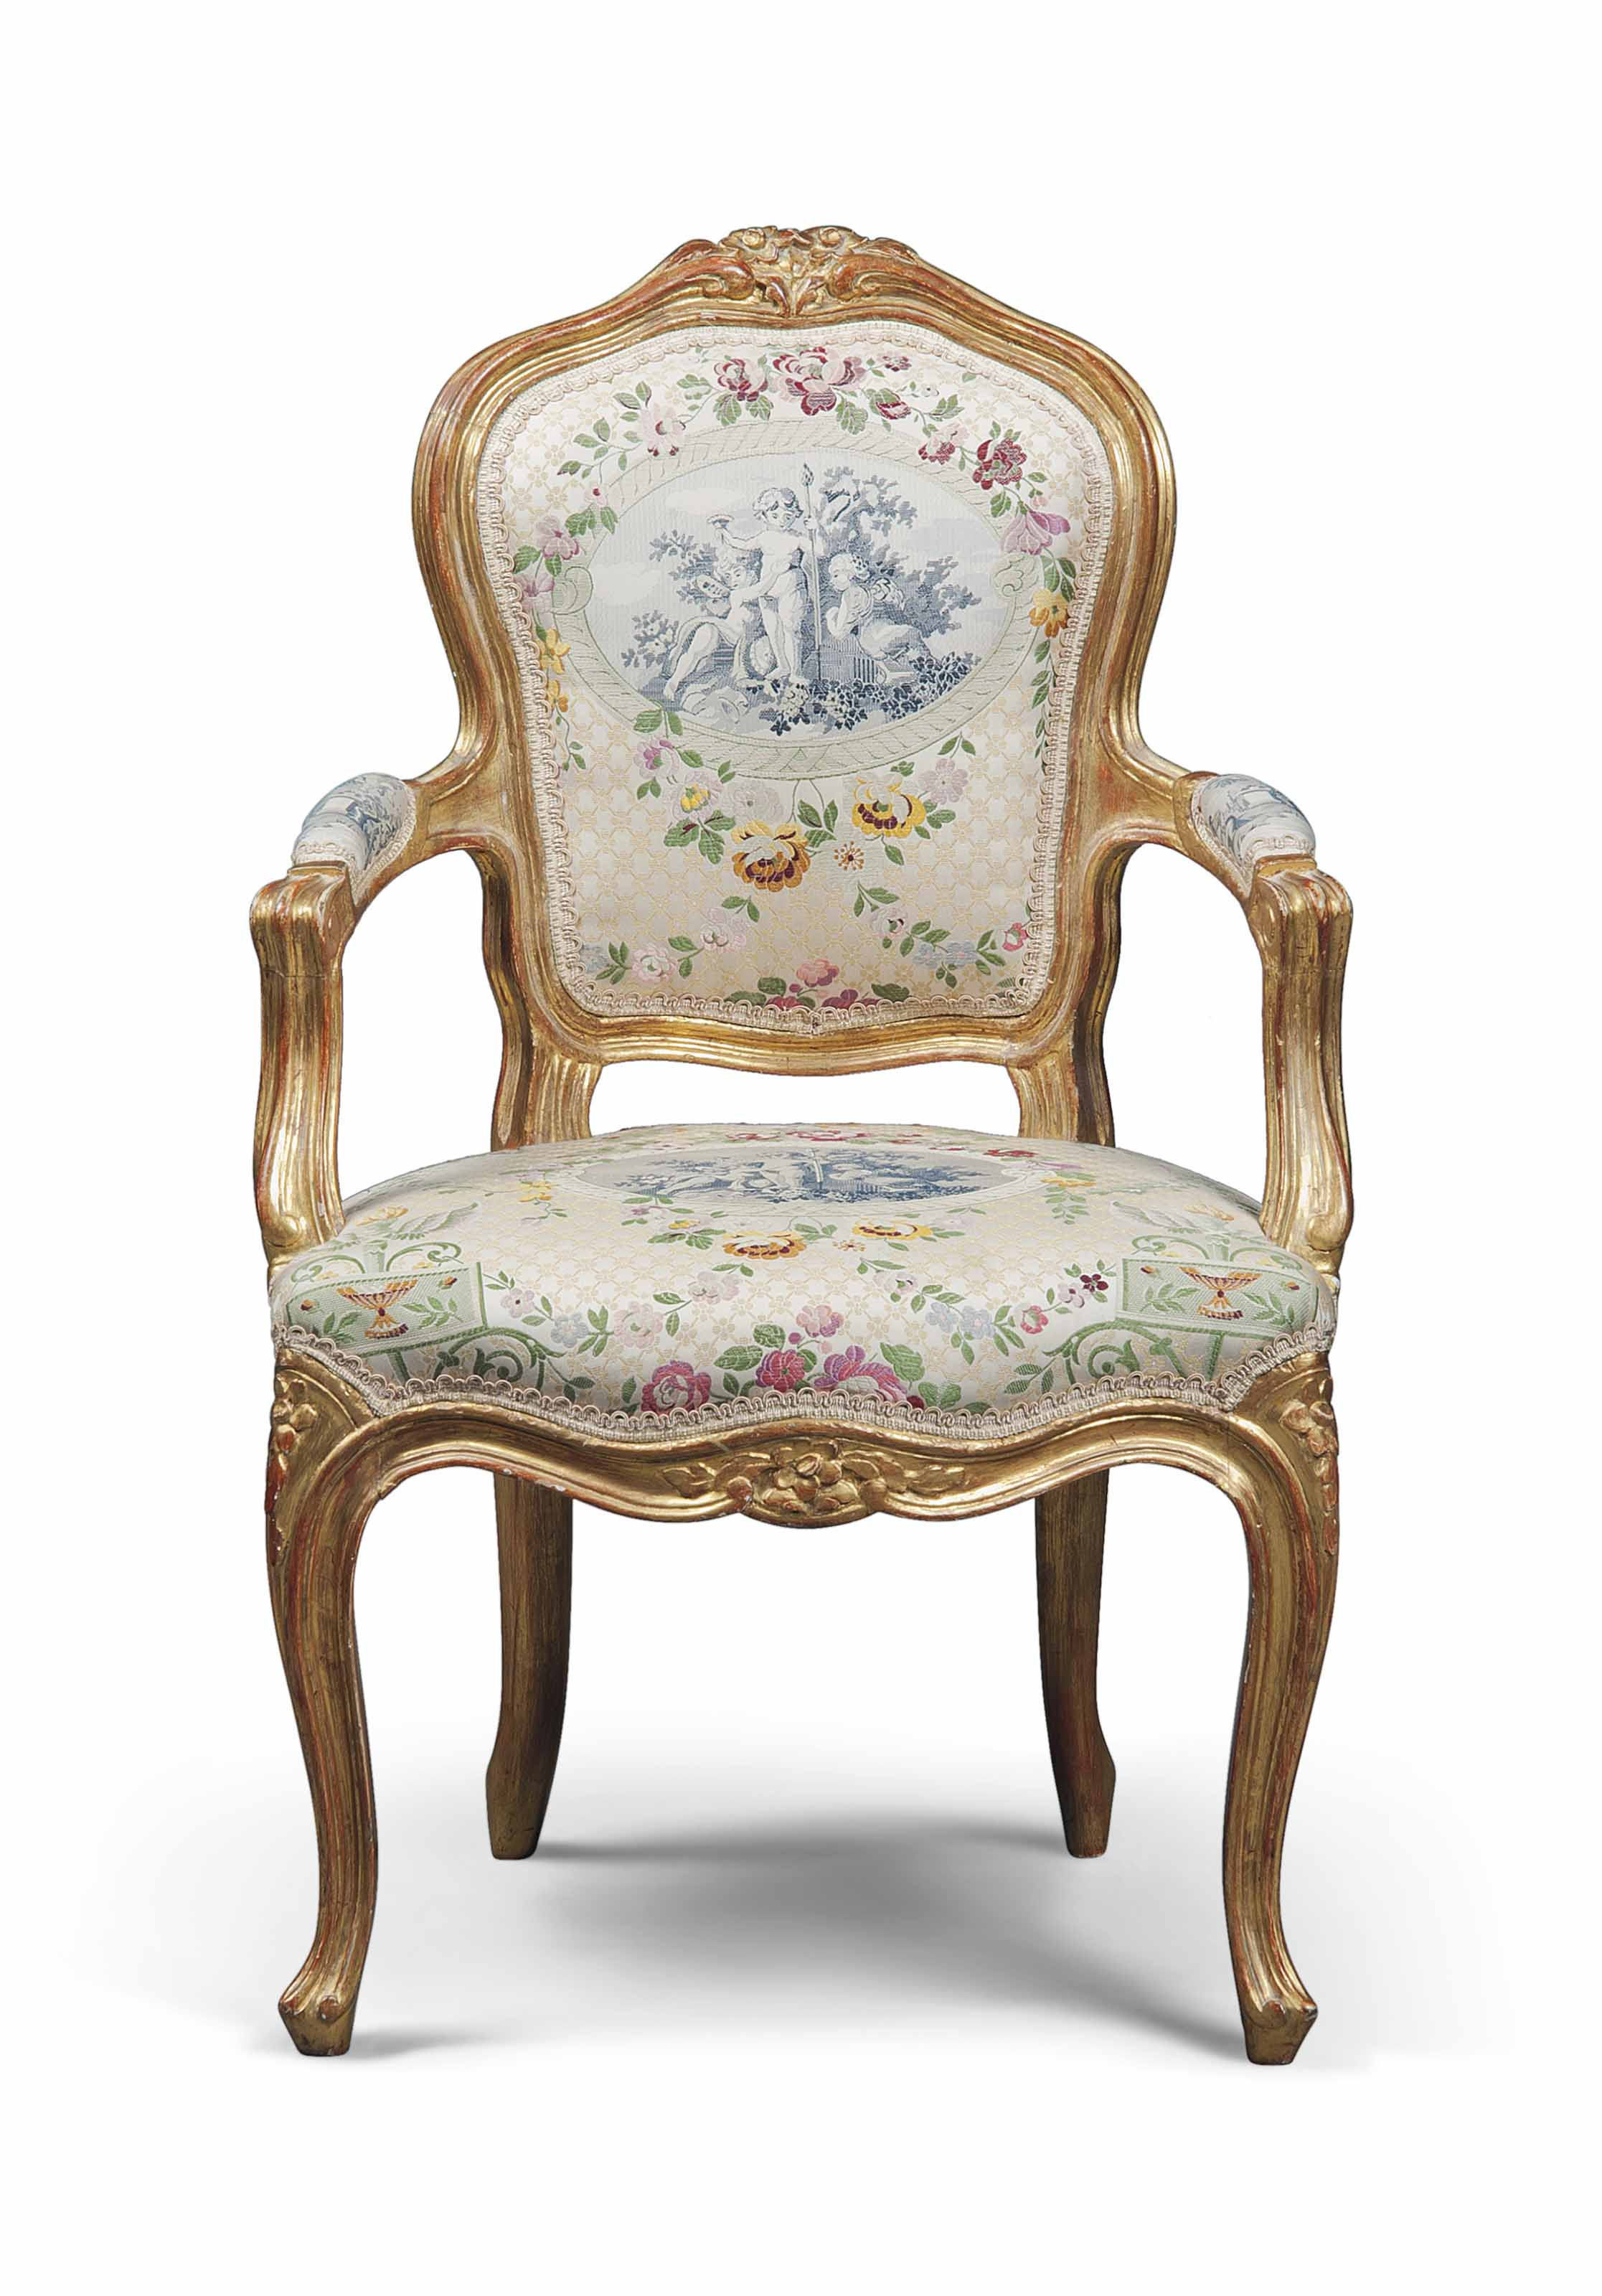 Fauteuils Style Louis Xv A Louis Xv Style Giltwood Miniature Fauteuil 19th Century